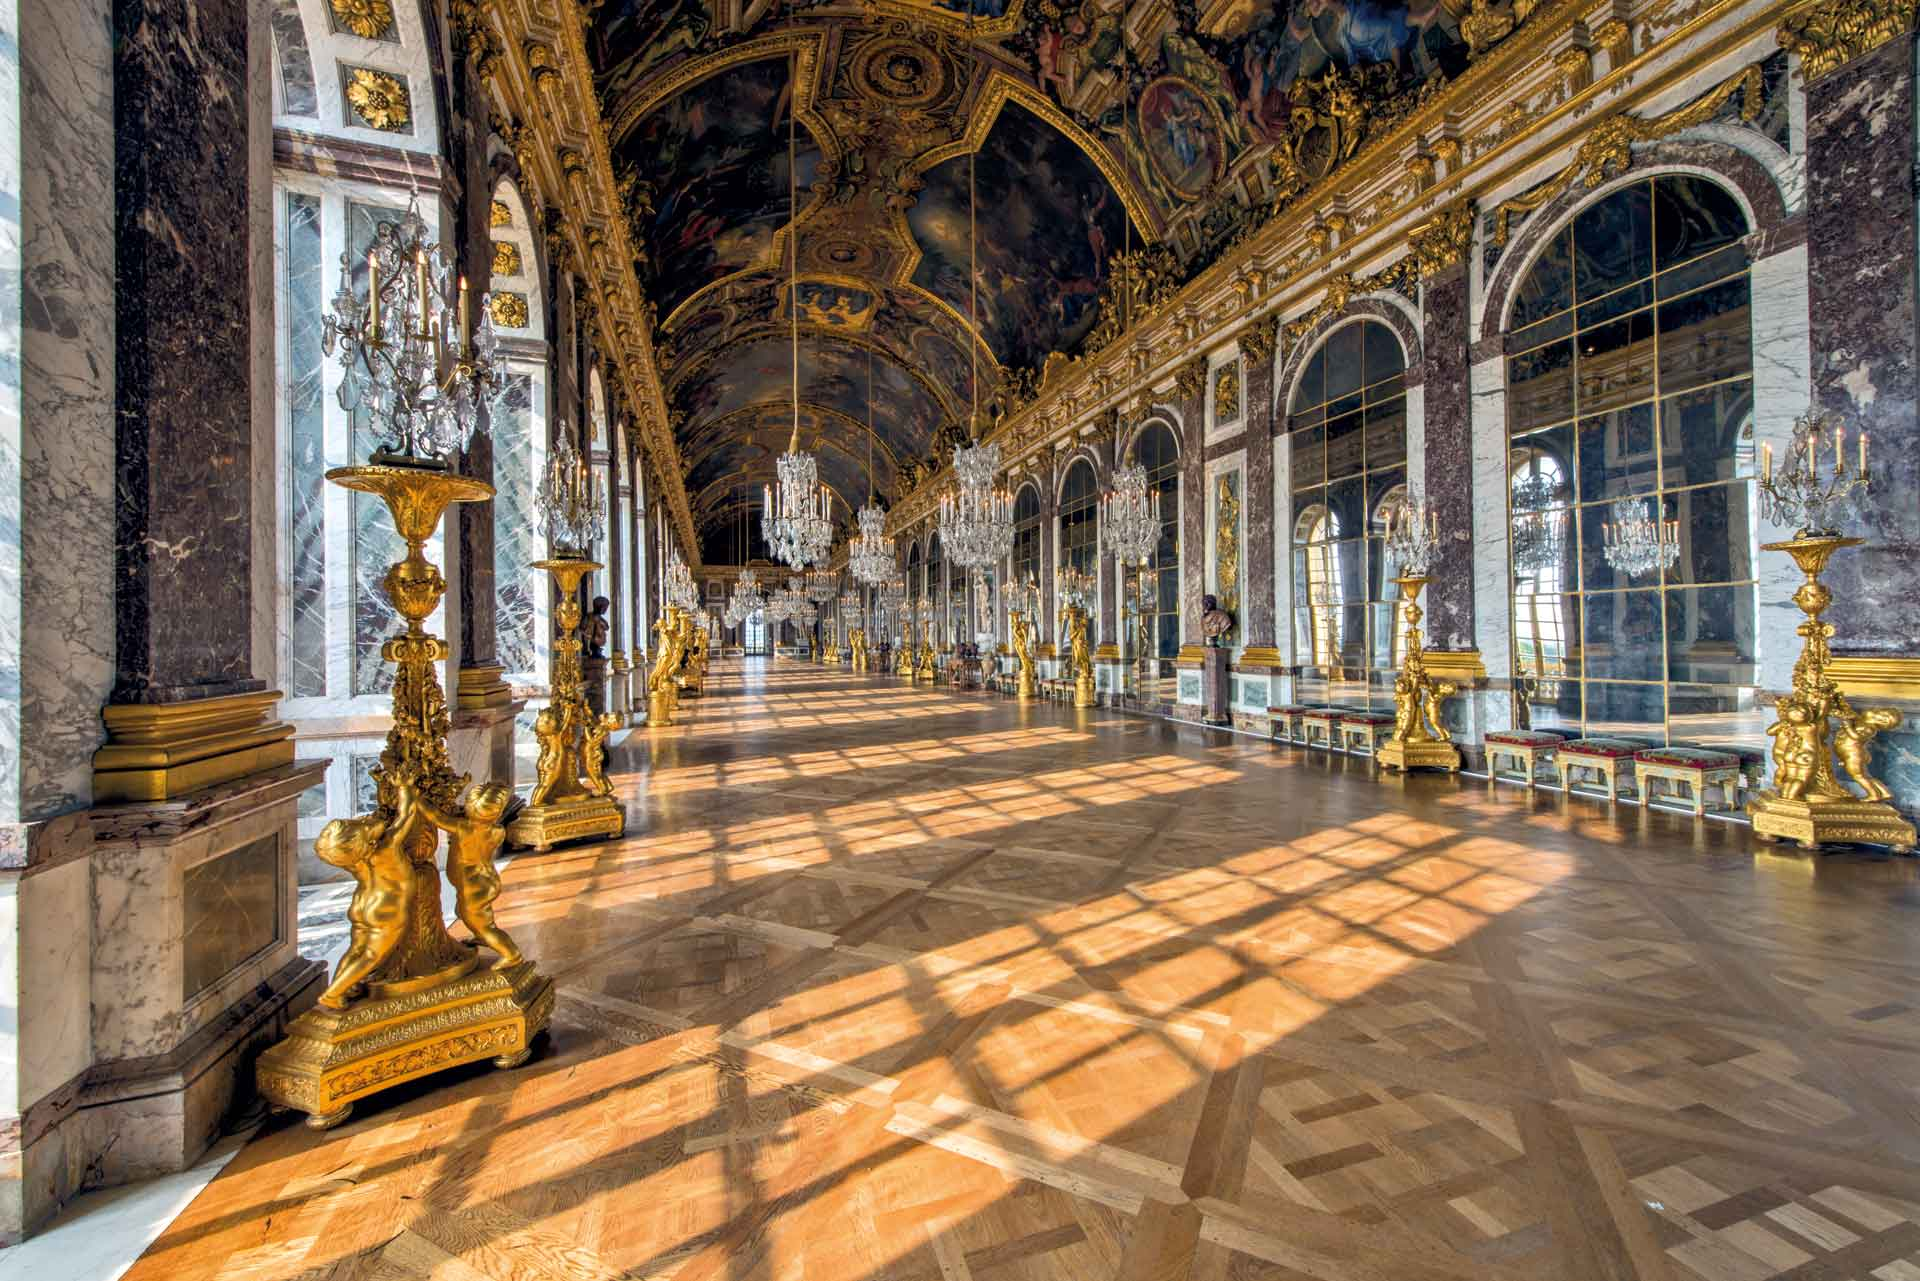 Le Meilleur The Palace Welcome To The Palace Of Versailles Ce Mois Ci